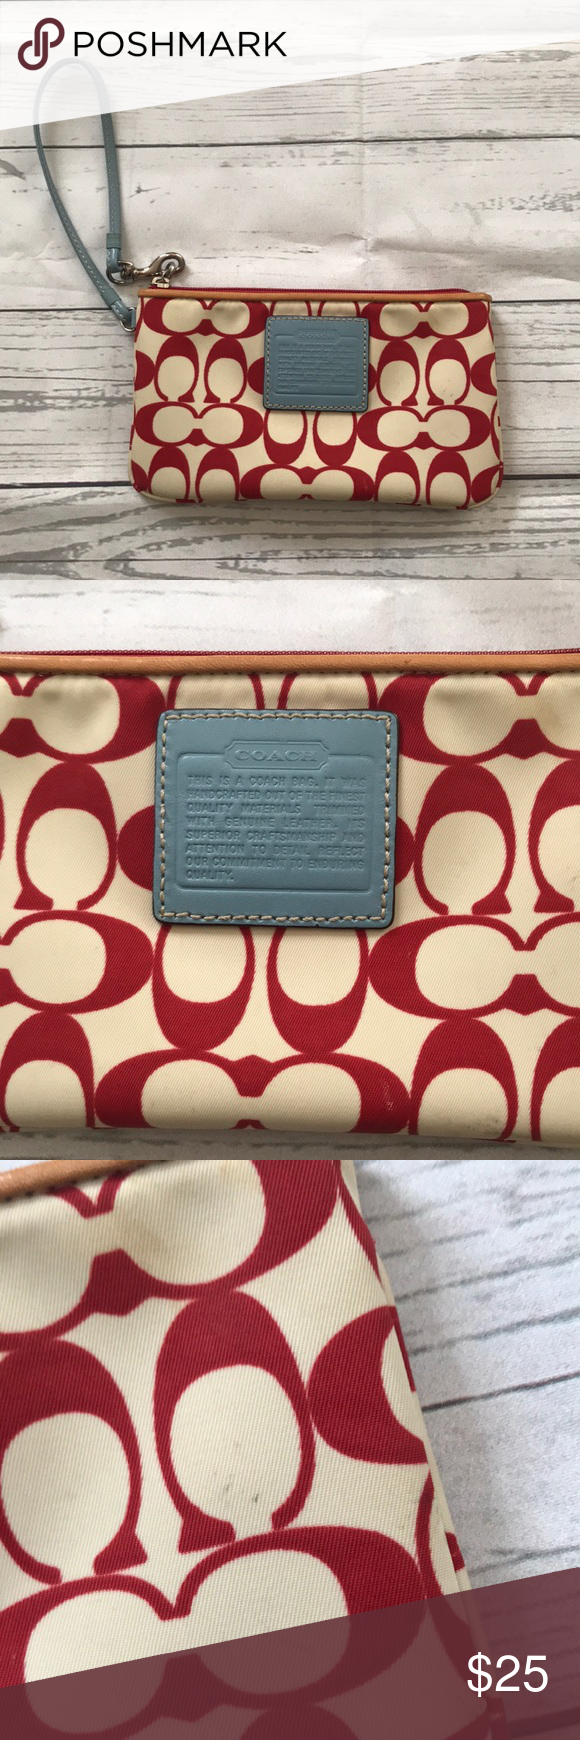 Coach Red White Blue Wristlet Has Some Marks But Still Super Cute Coach Bags Clutches Wristlets